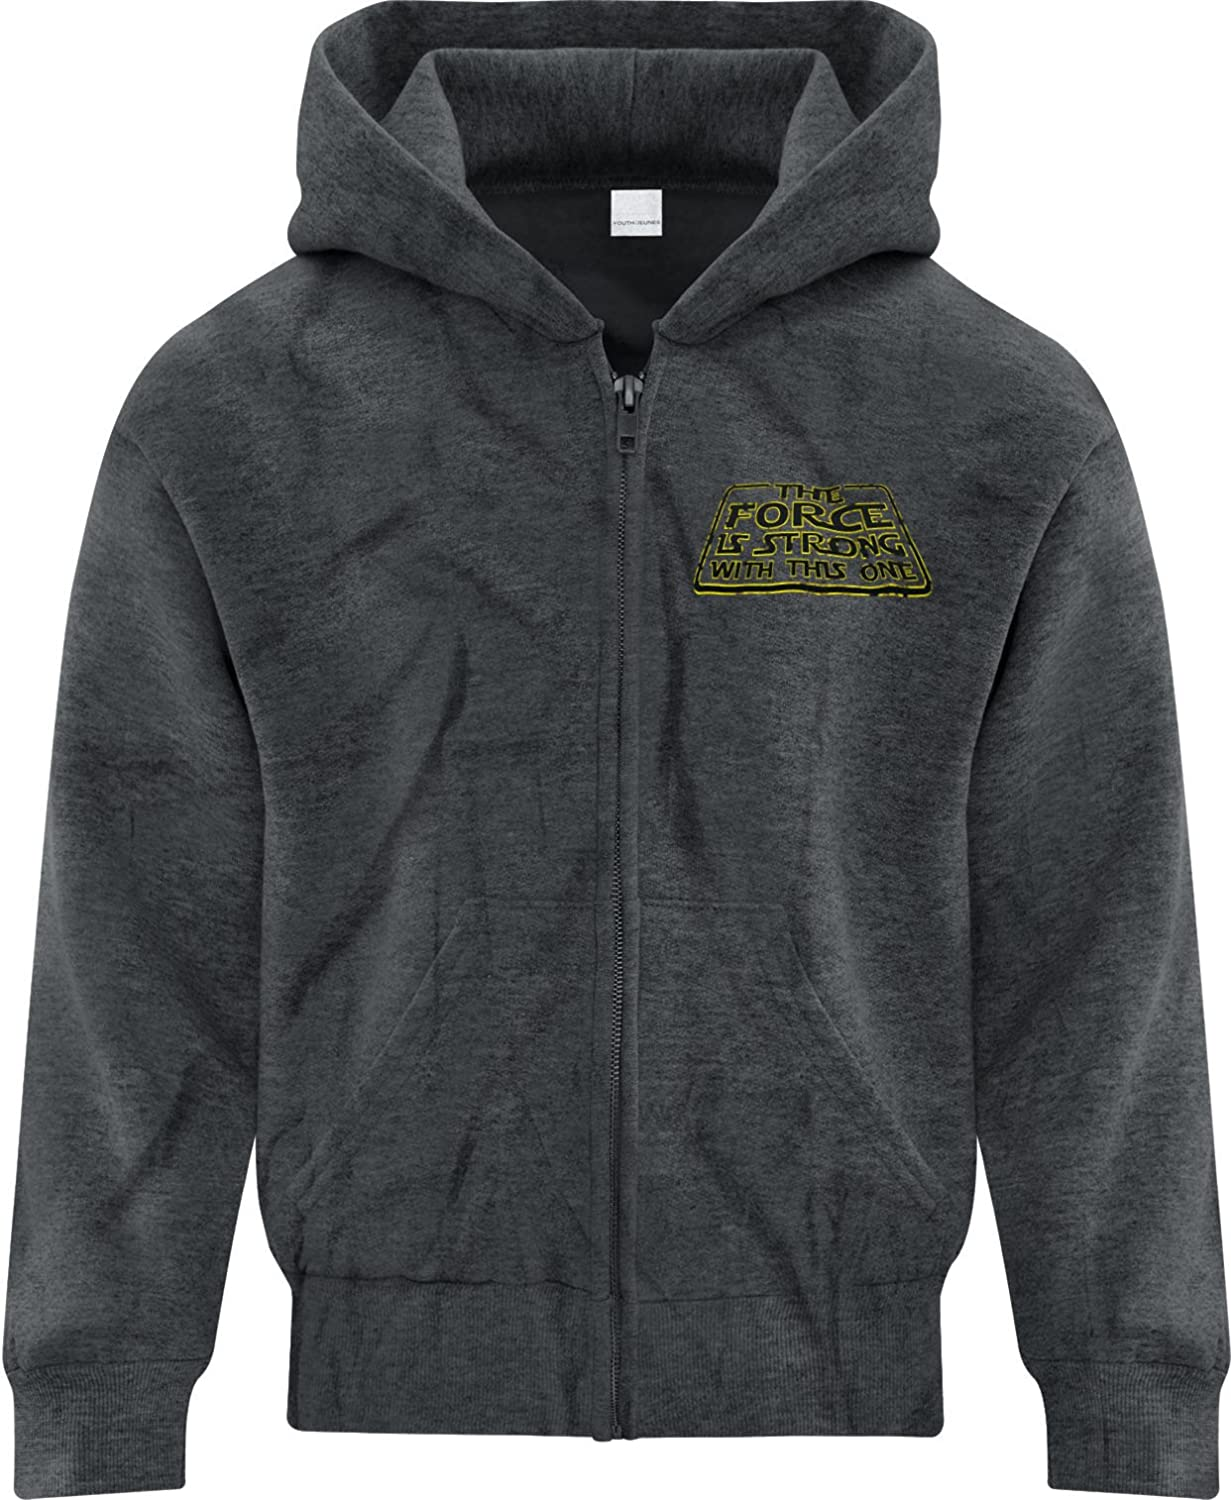 BSW Youth Boys The Force Is Strong With This One Star Wars Zip Hoodie 1257-2HSYZ